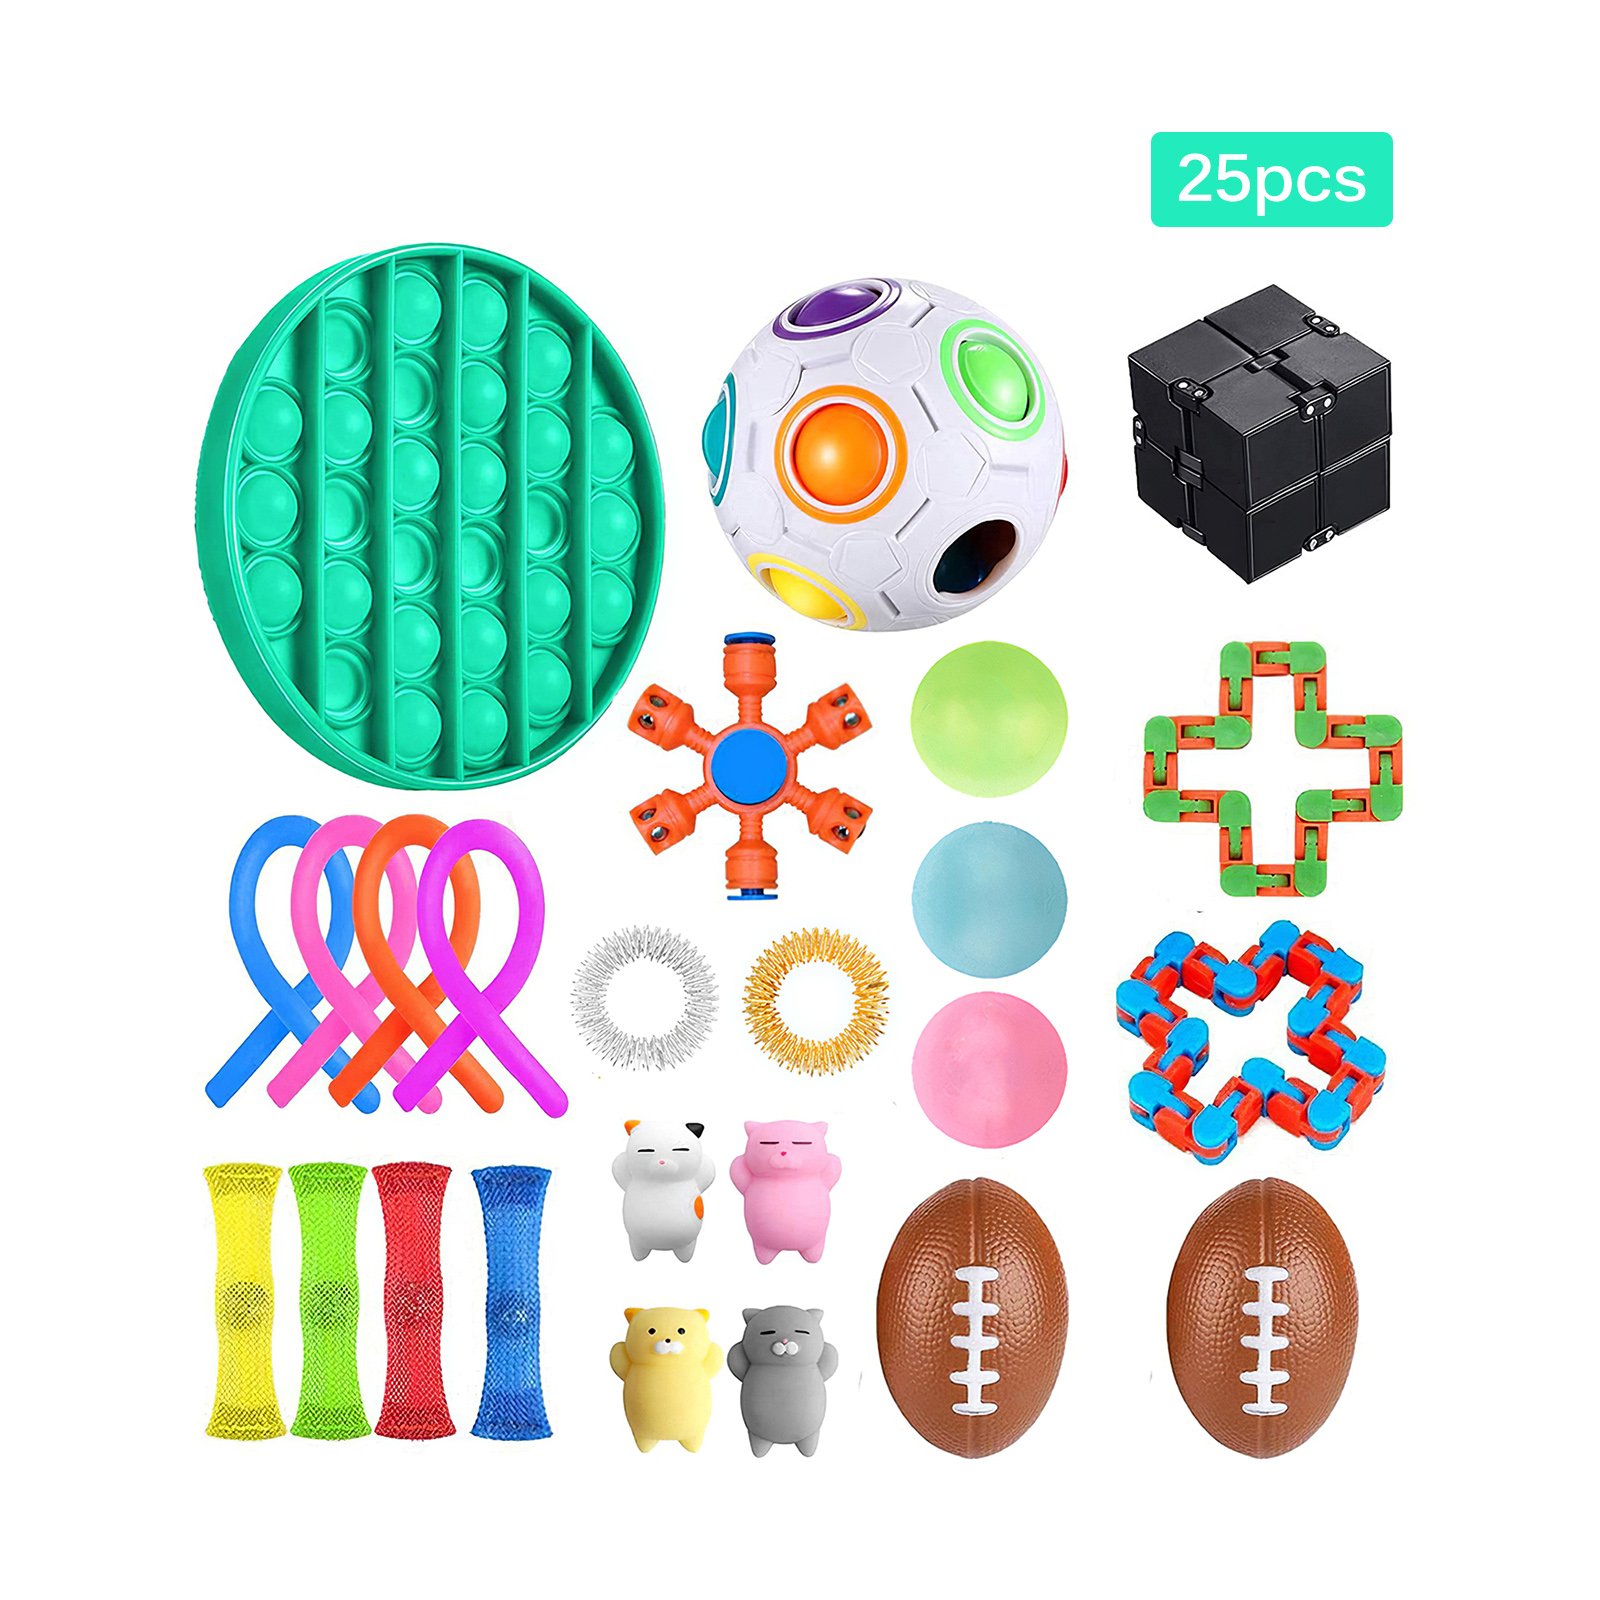 25 pack Fidget Sensory Toy Set Stress Relief Toys Autism Anxiety Relief Stress Pop Bubble img2